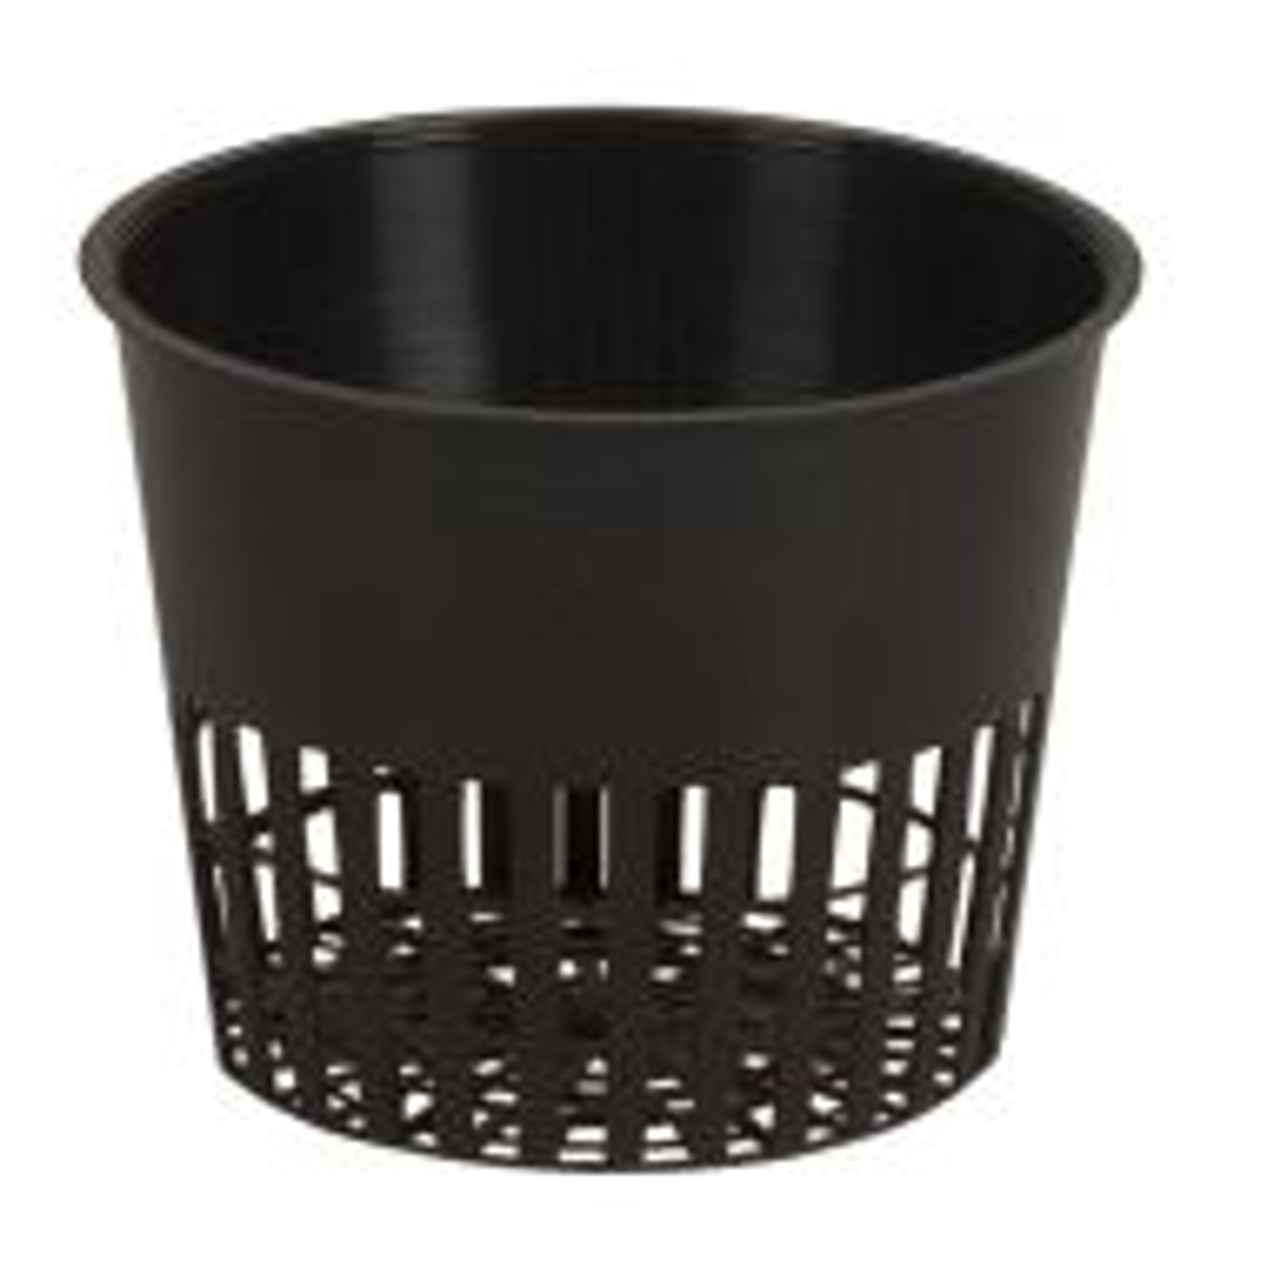 "These 3.5"" Flex Net Pots are fantastic for propagating seedlings and cuttings and will accommodate most types of media. Gardeners can insert these into their pre-fab or customized hydroponics system for premium performance."